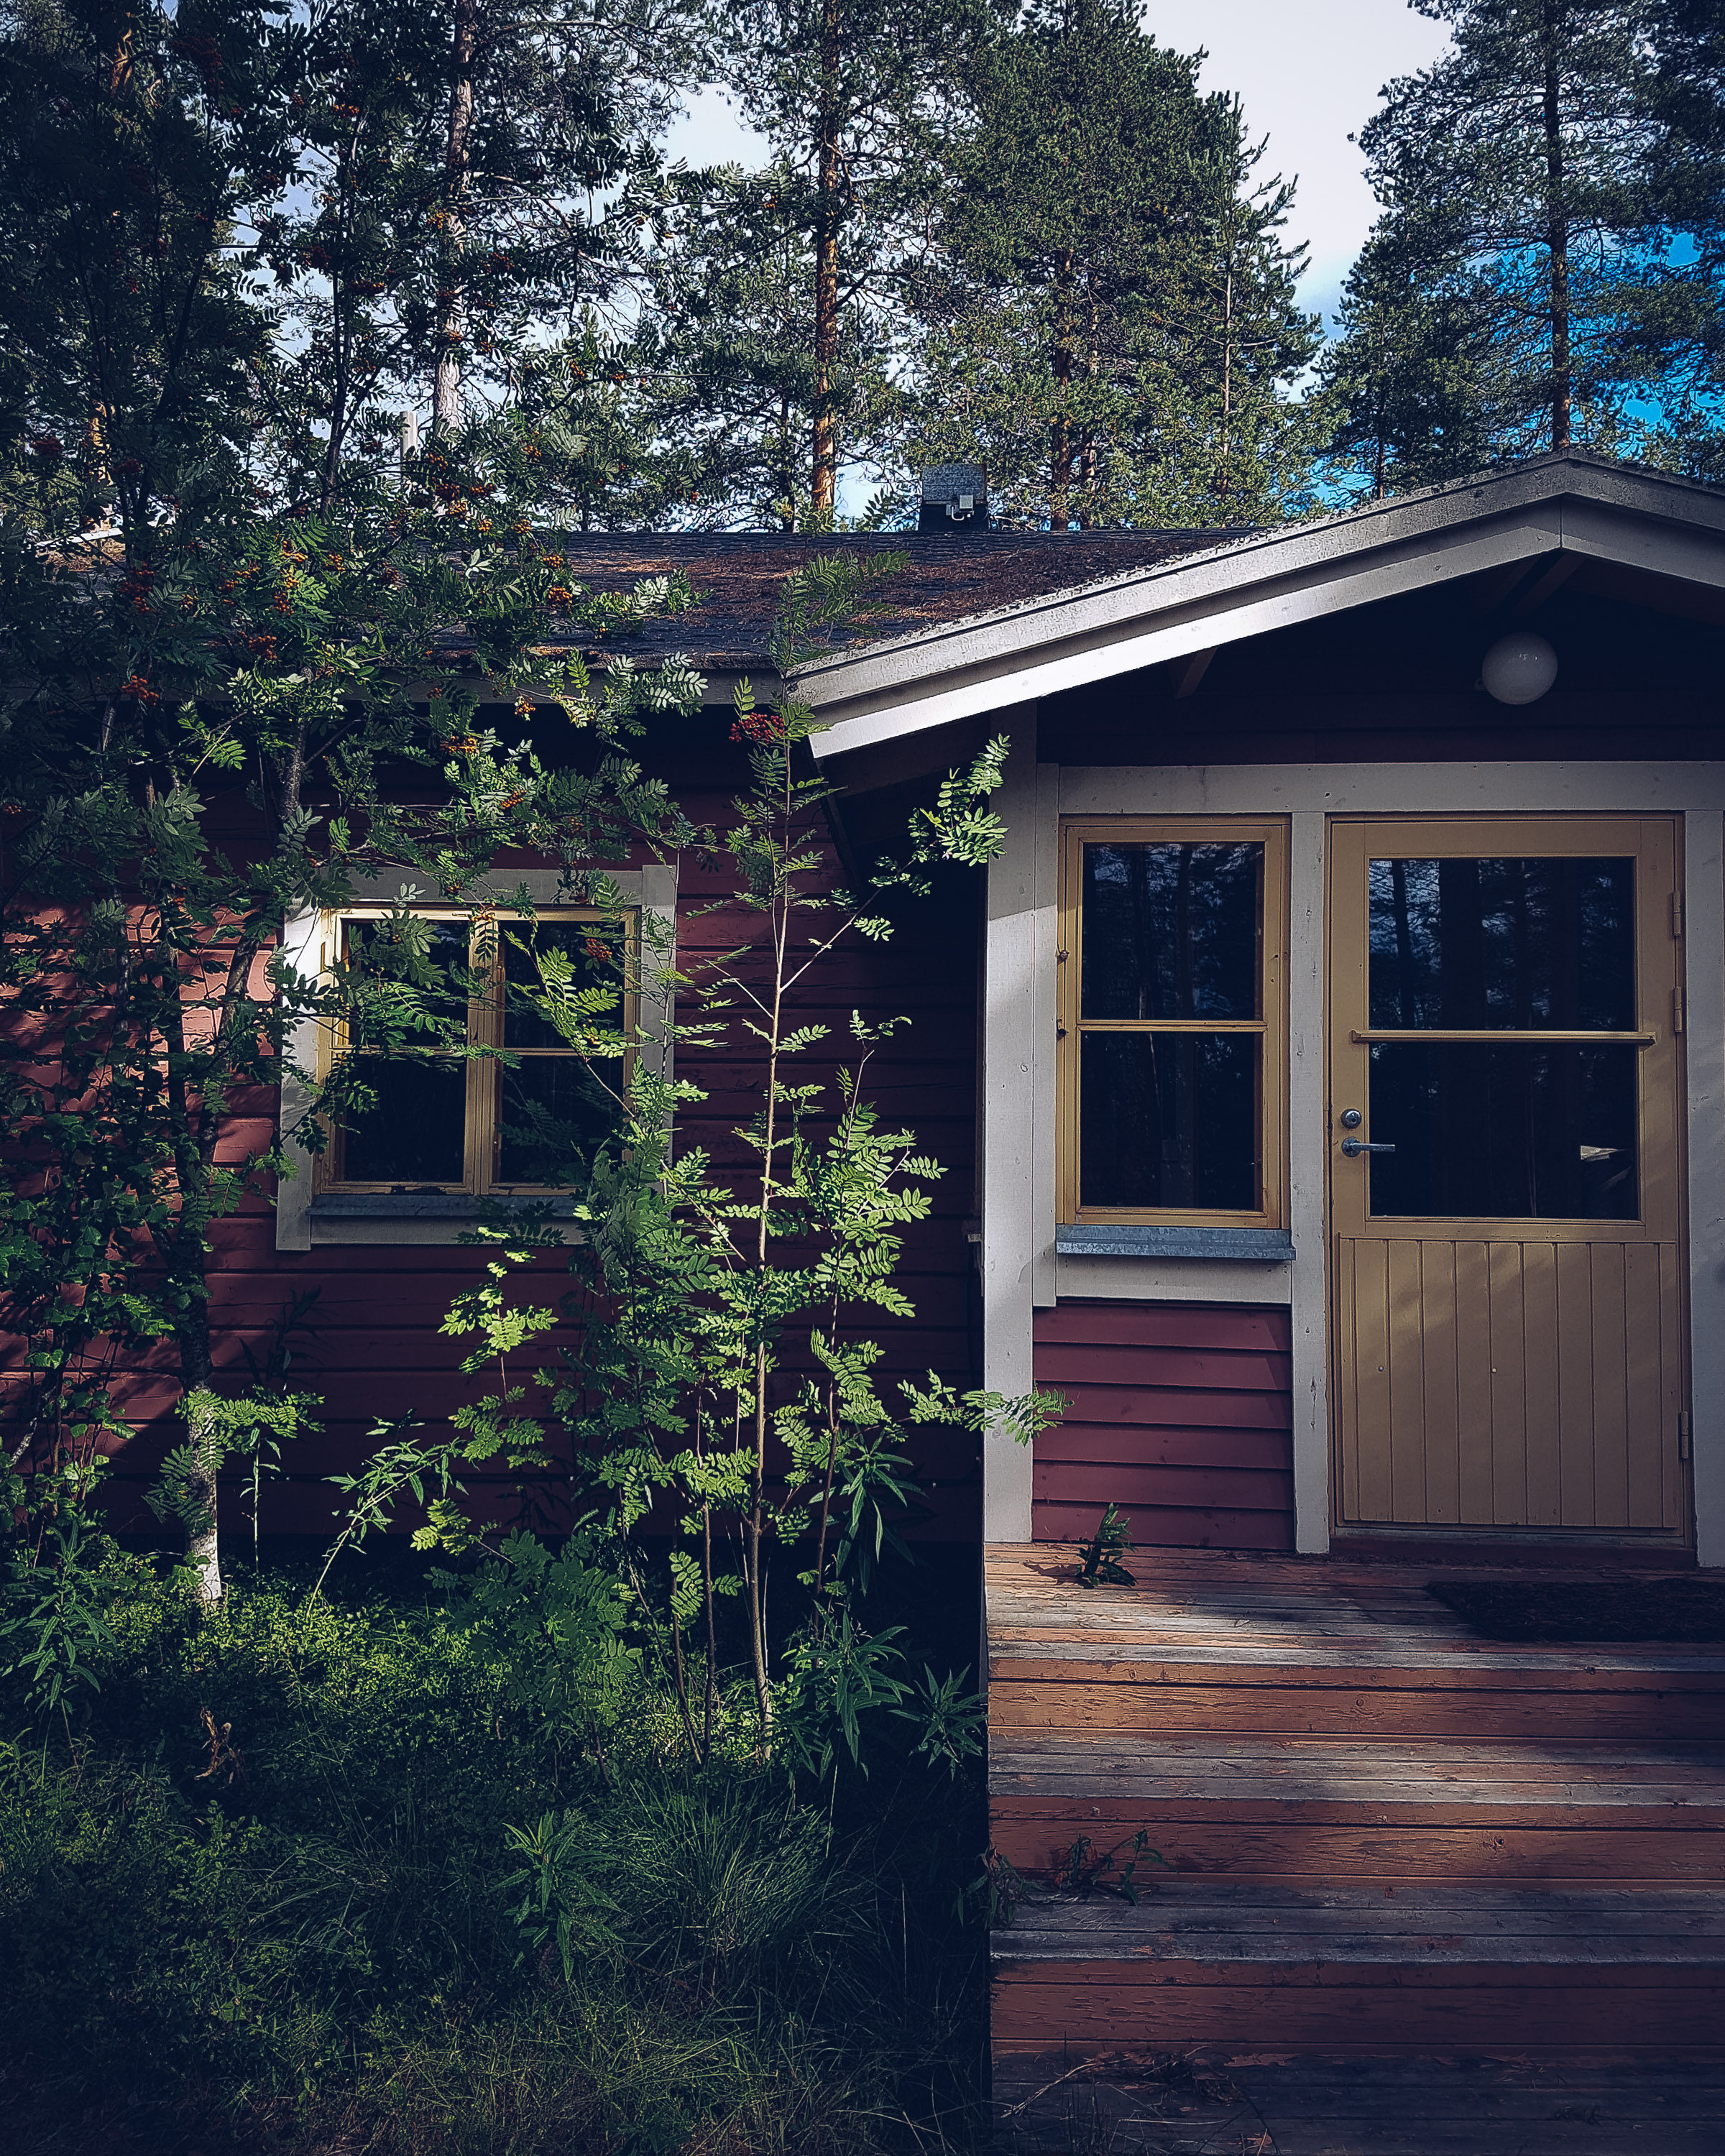 Hossa Finland National Park Littlegreenshed 2017